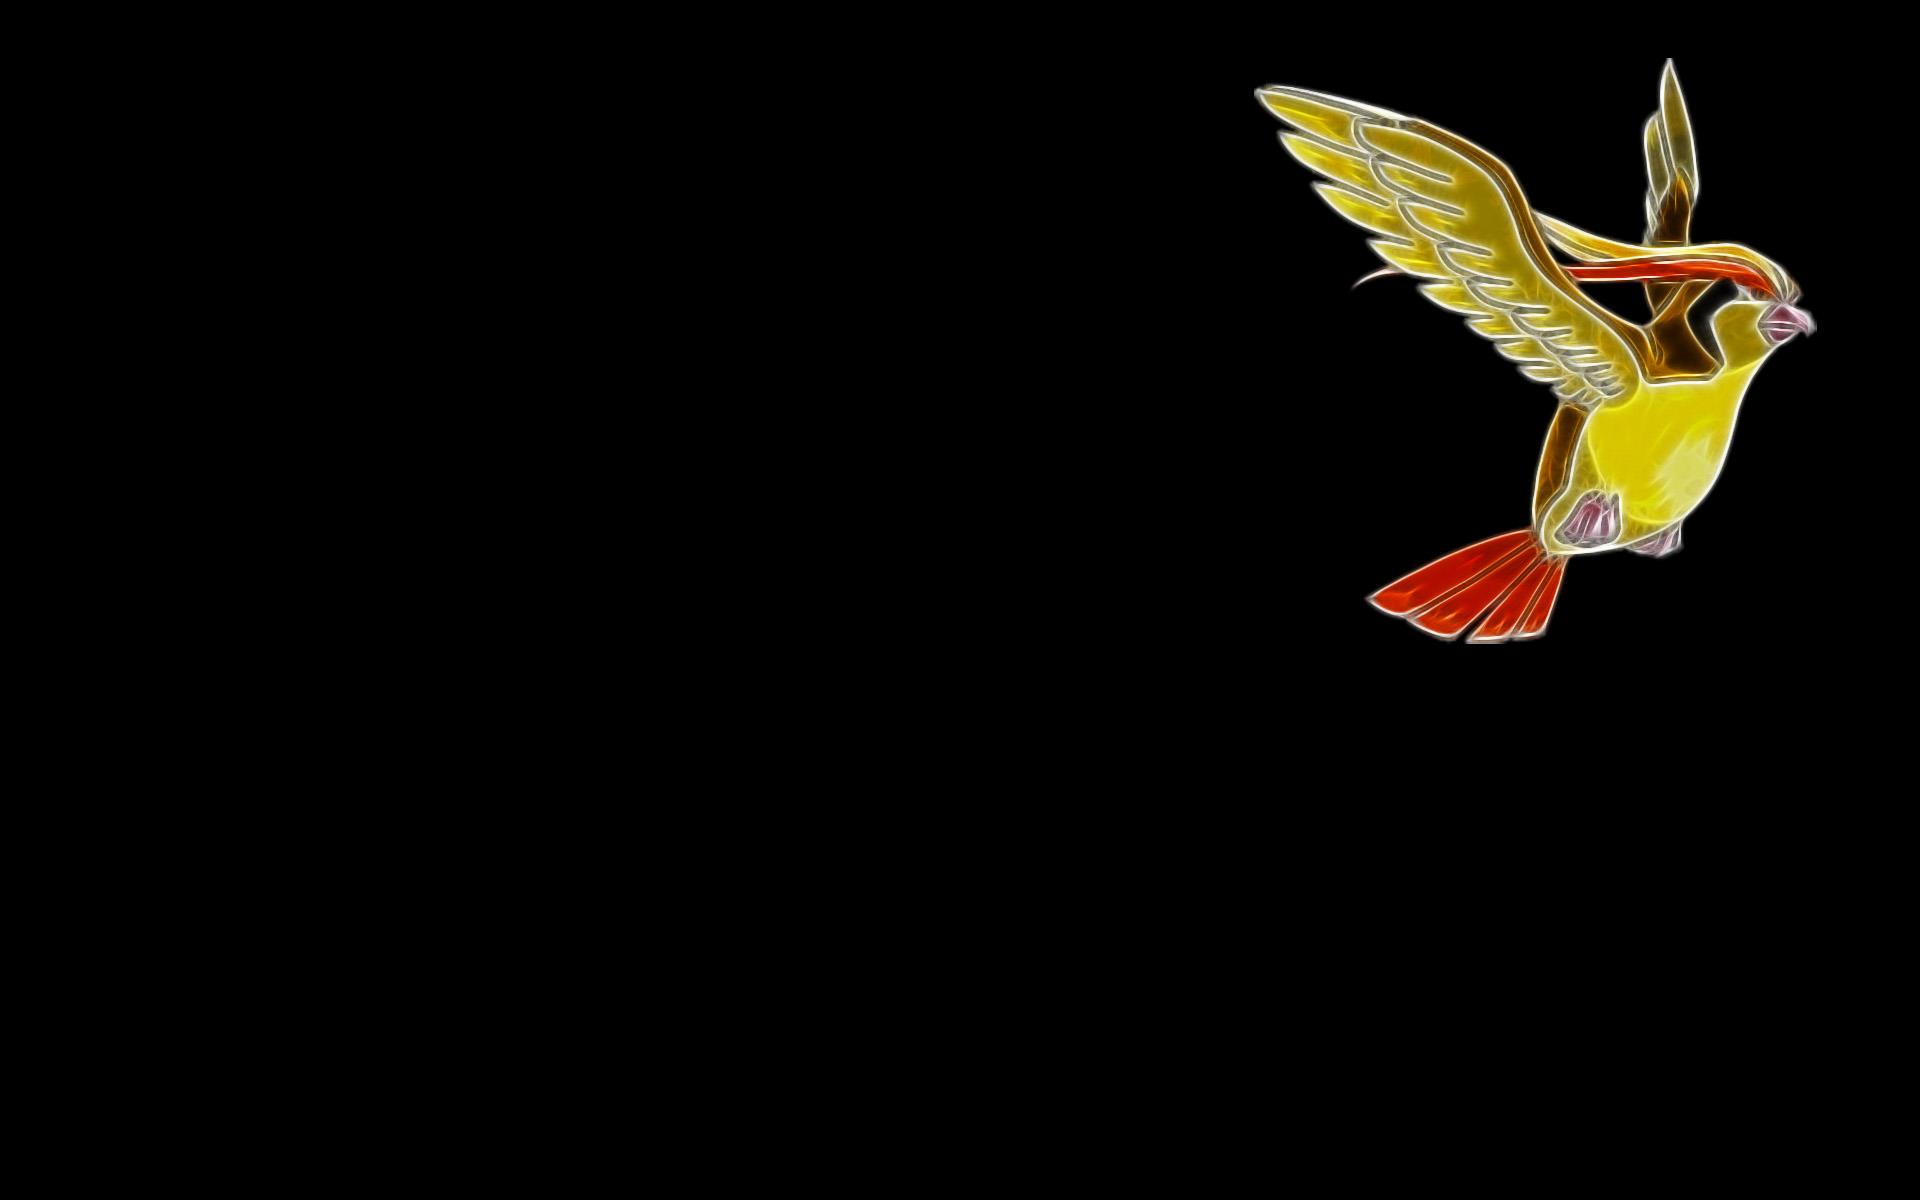 pidgeot-pokemon-wallpaper-free-download